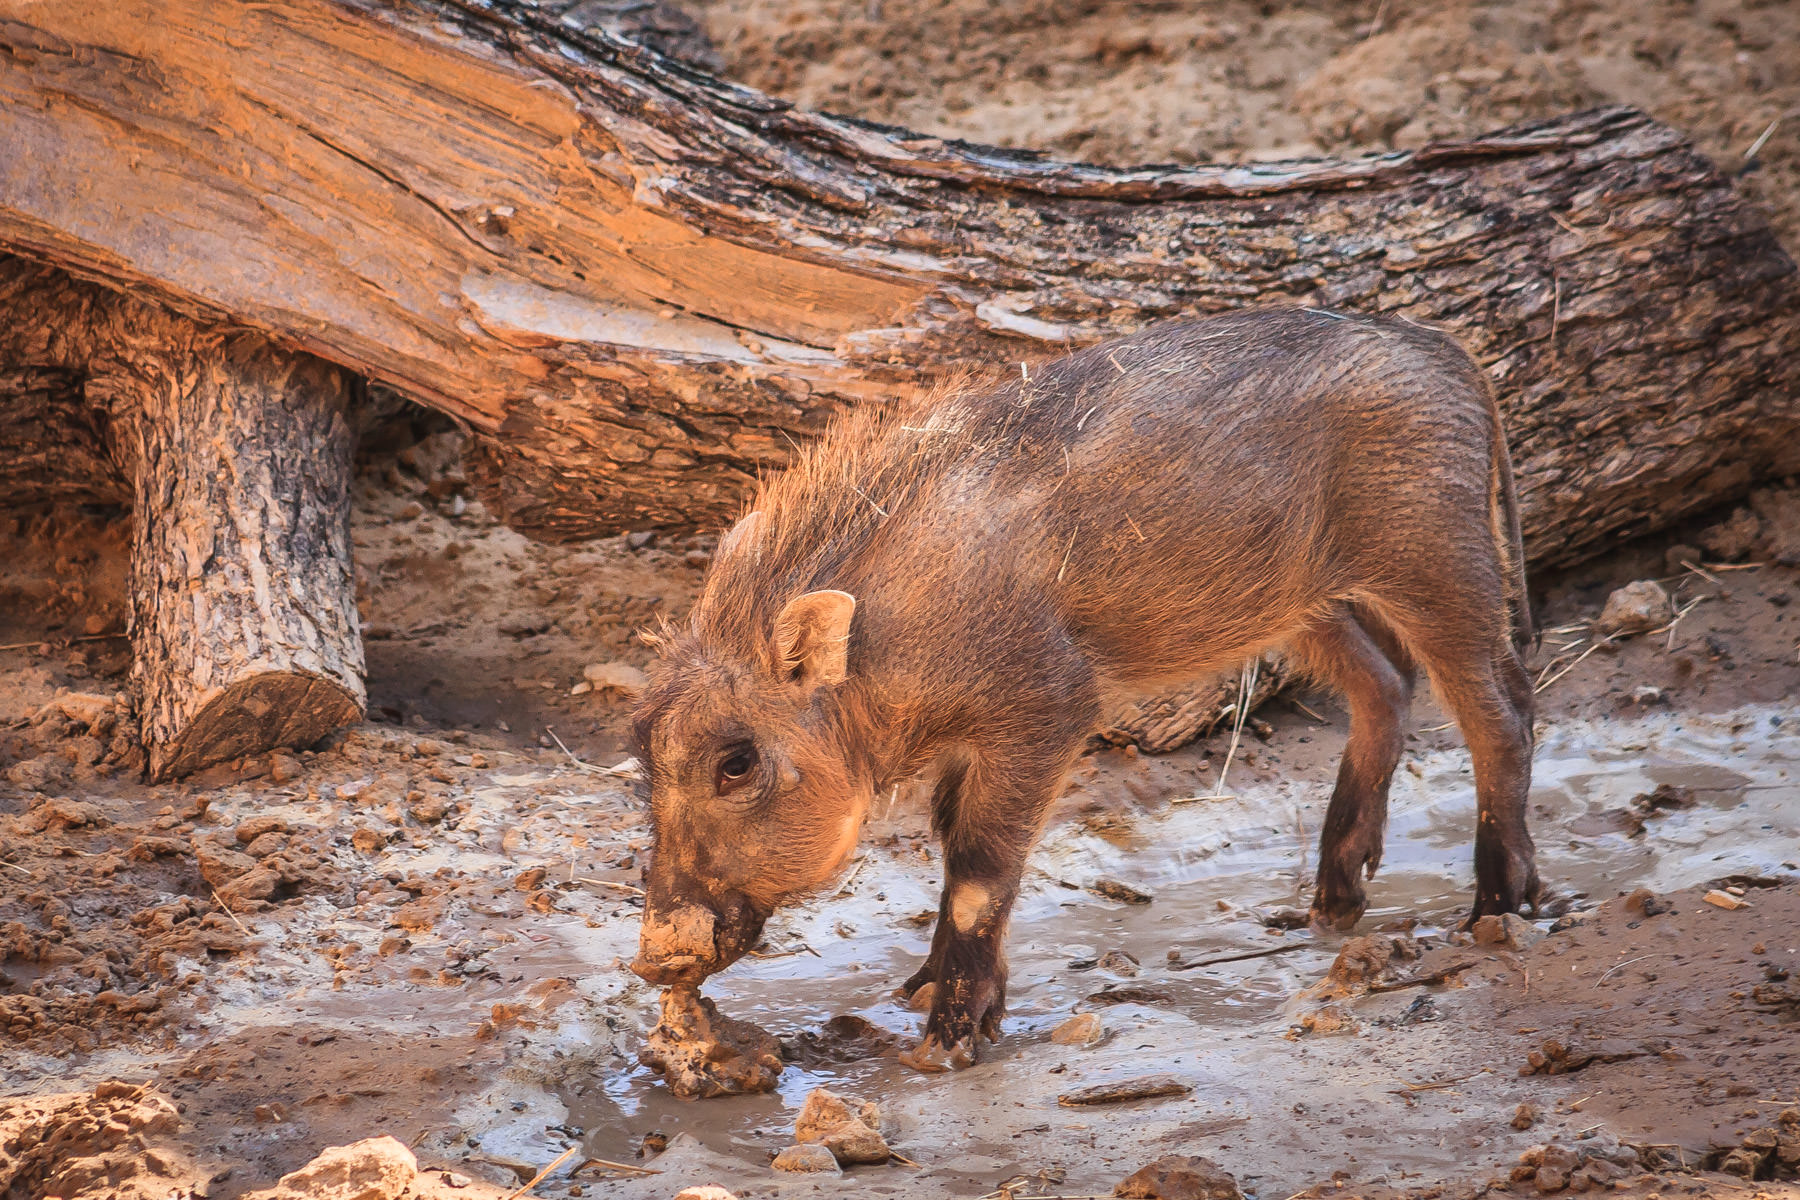 A young warthog enjoys his muddy home at the Dallas Zoo.